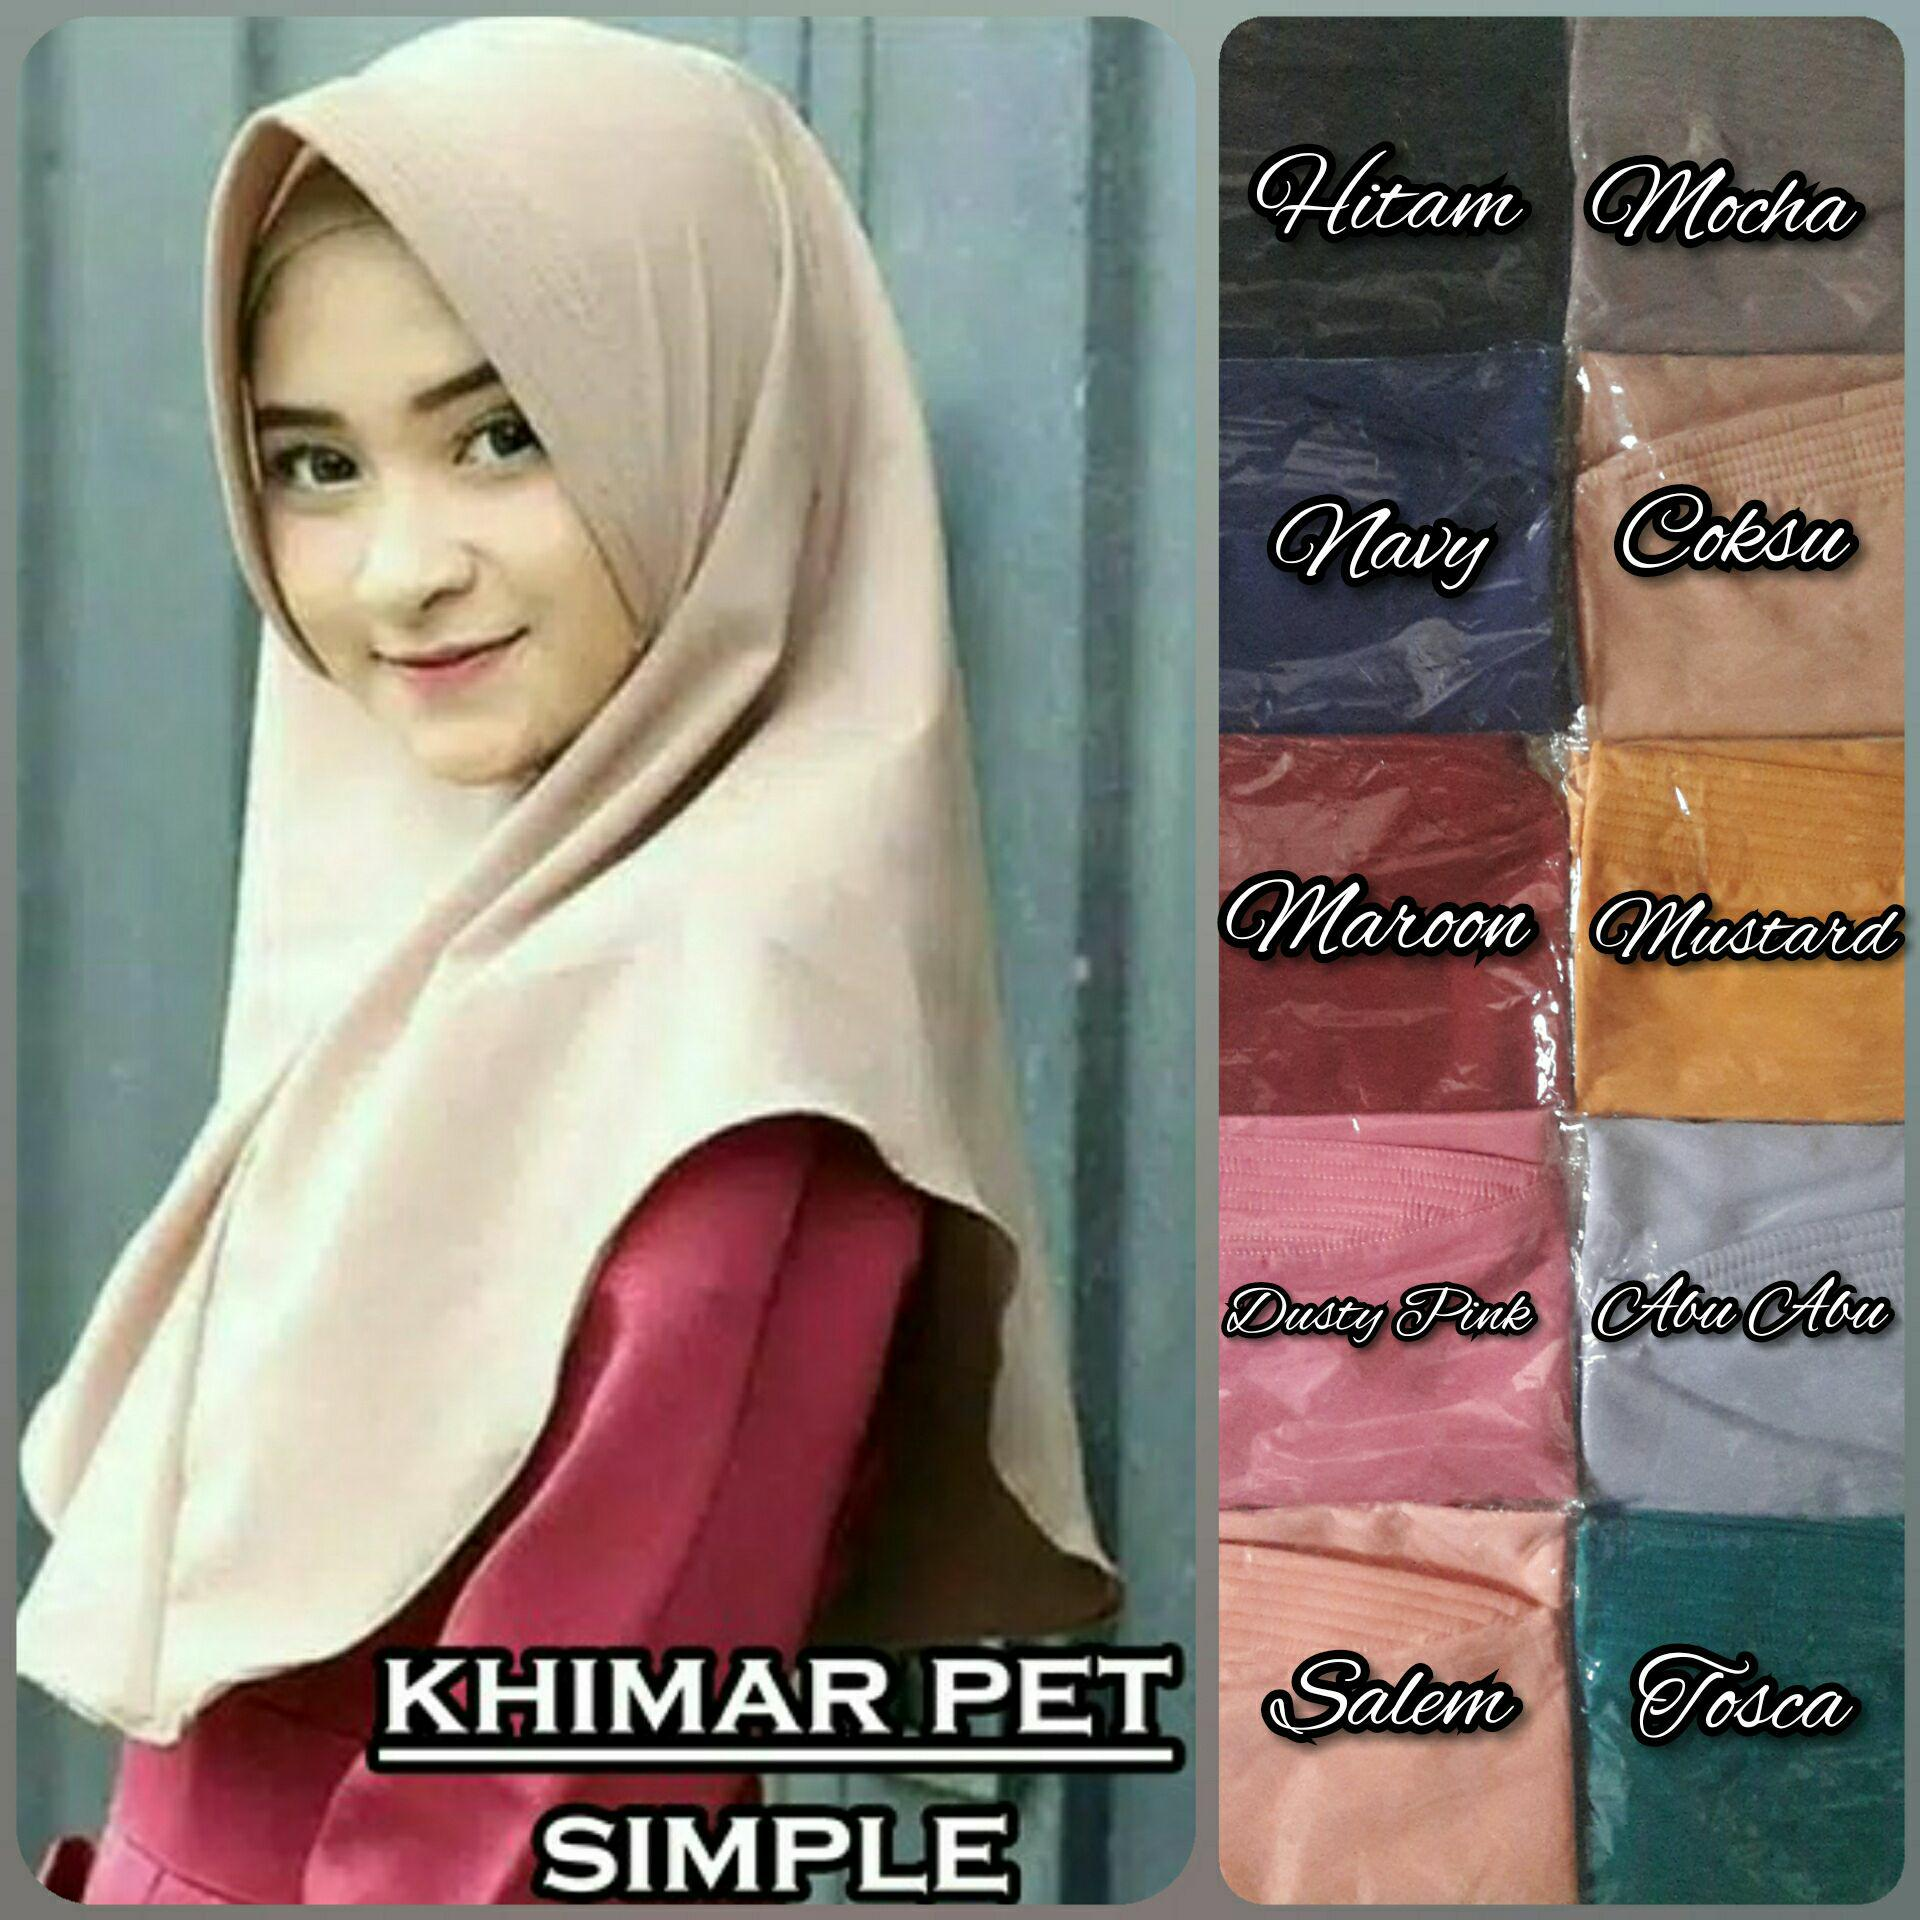 Hijab Instan Khimar Simple Pet